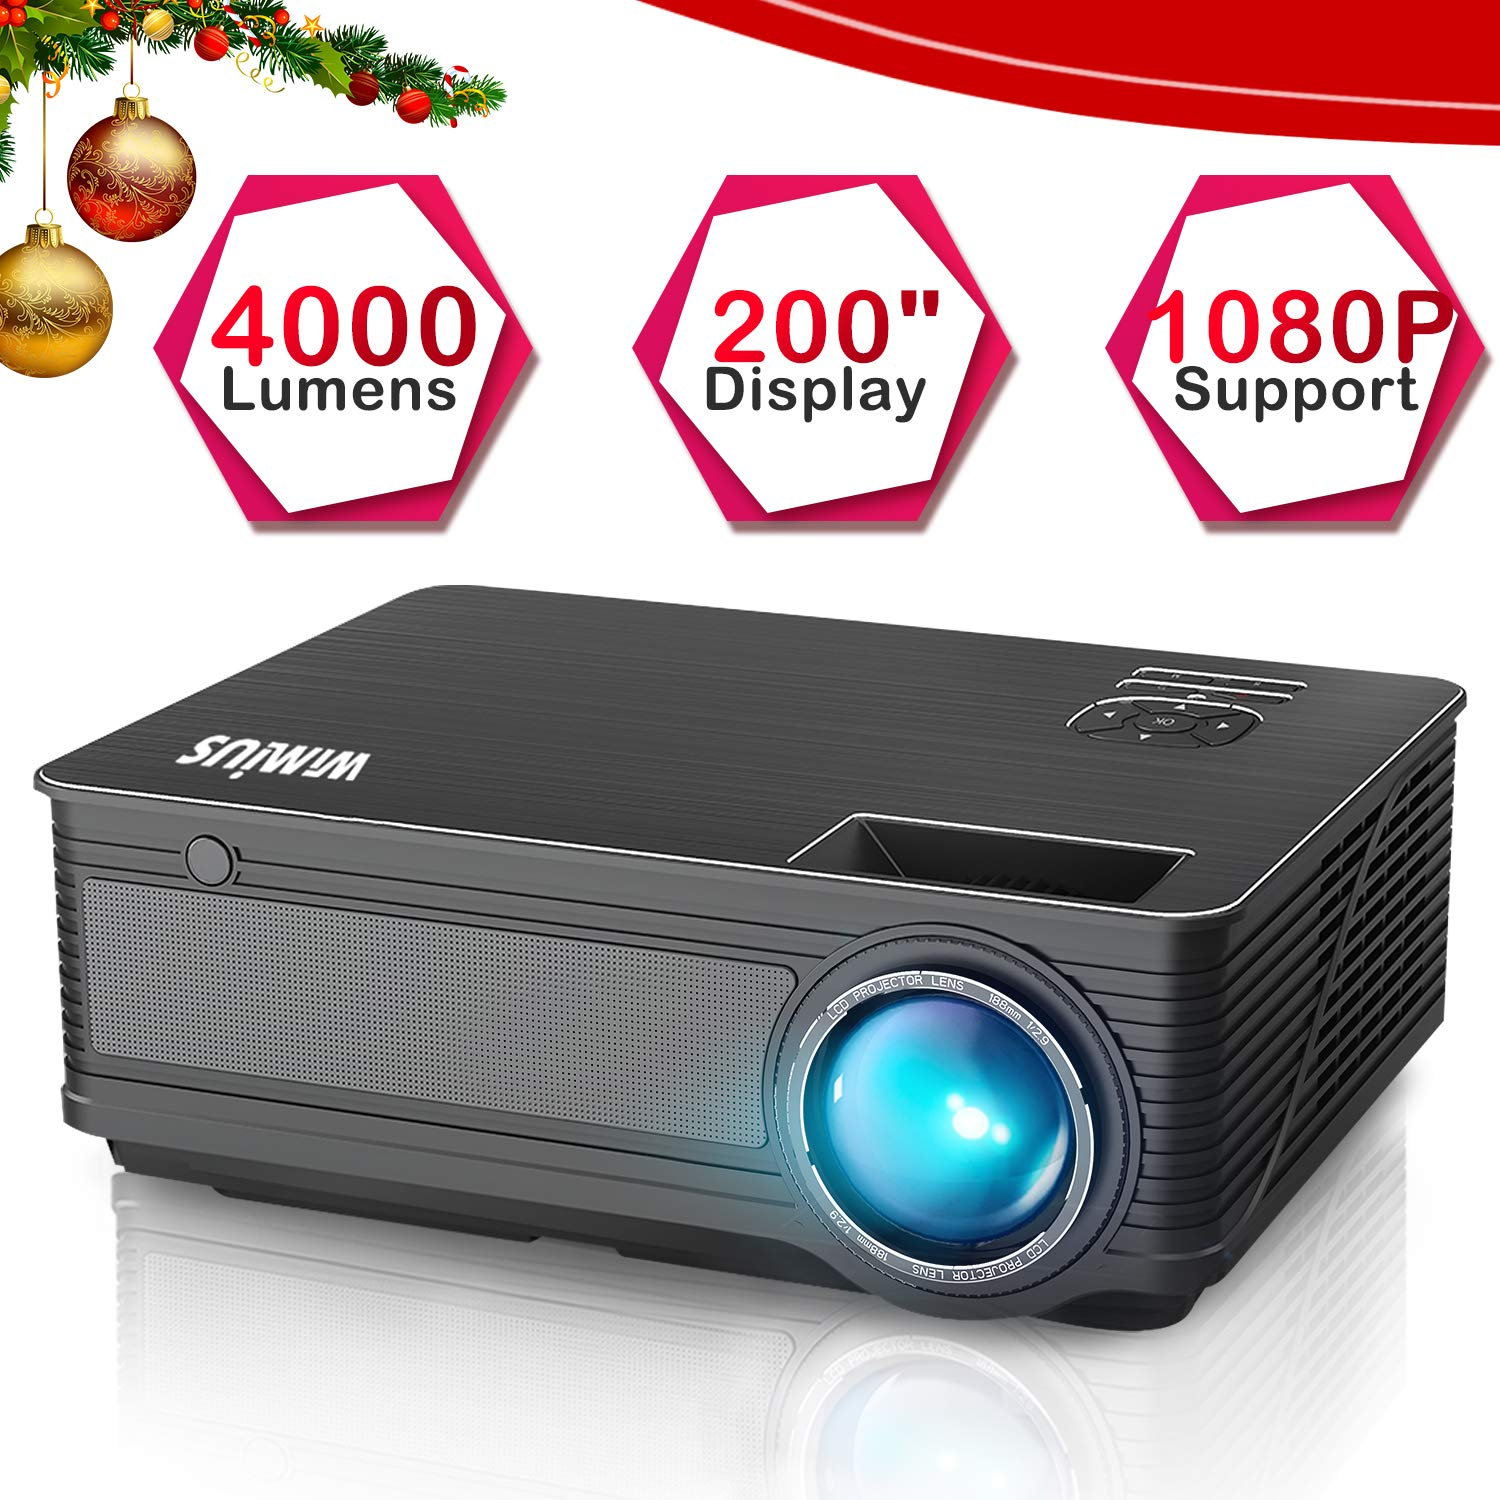 Projector, WiMiUS P18 4000 Lumens LED Projector Support 1080P 200'' Display 50,000H LED Compatible with Amazon Fire TV Stick Laptop iPhone Android Phone Xbox Via HDMI USB VGA AV Black